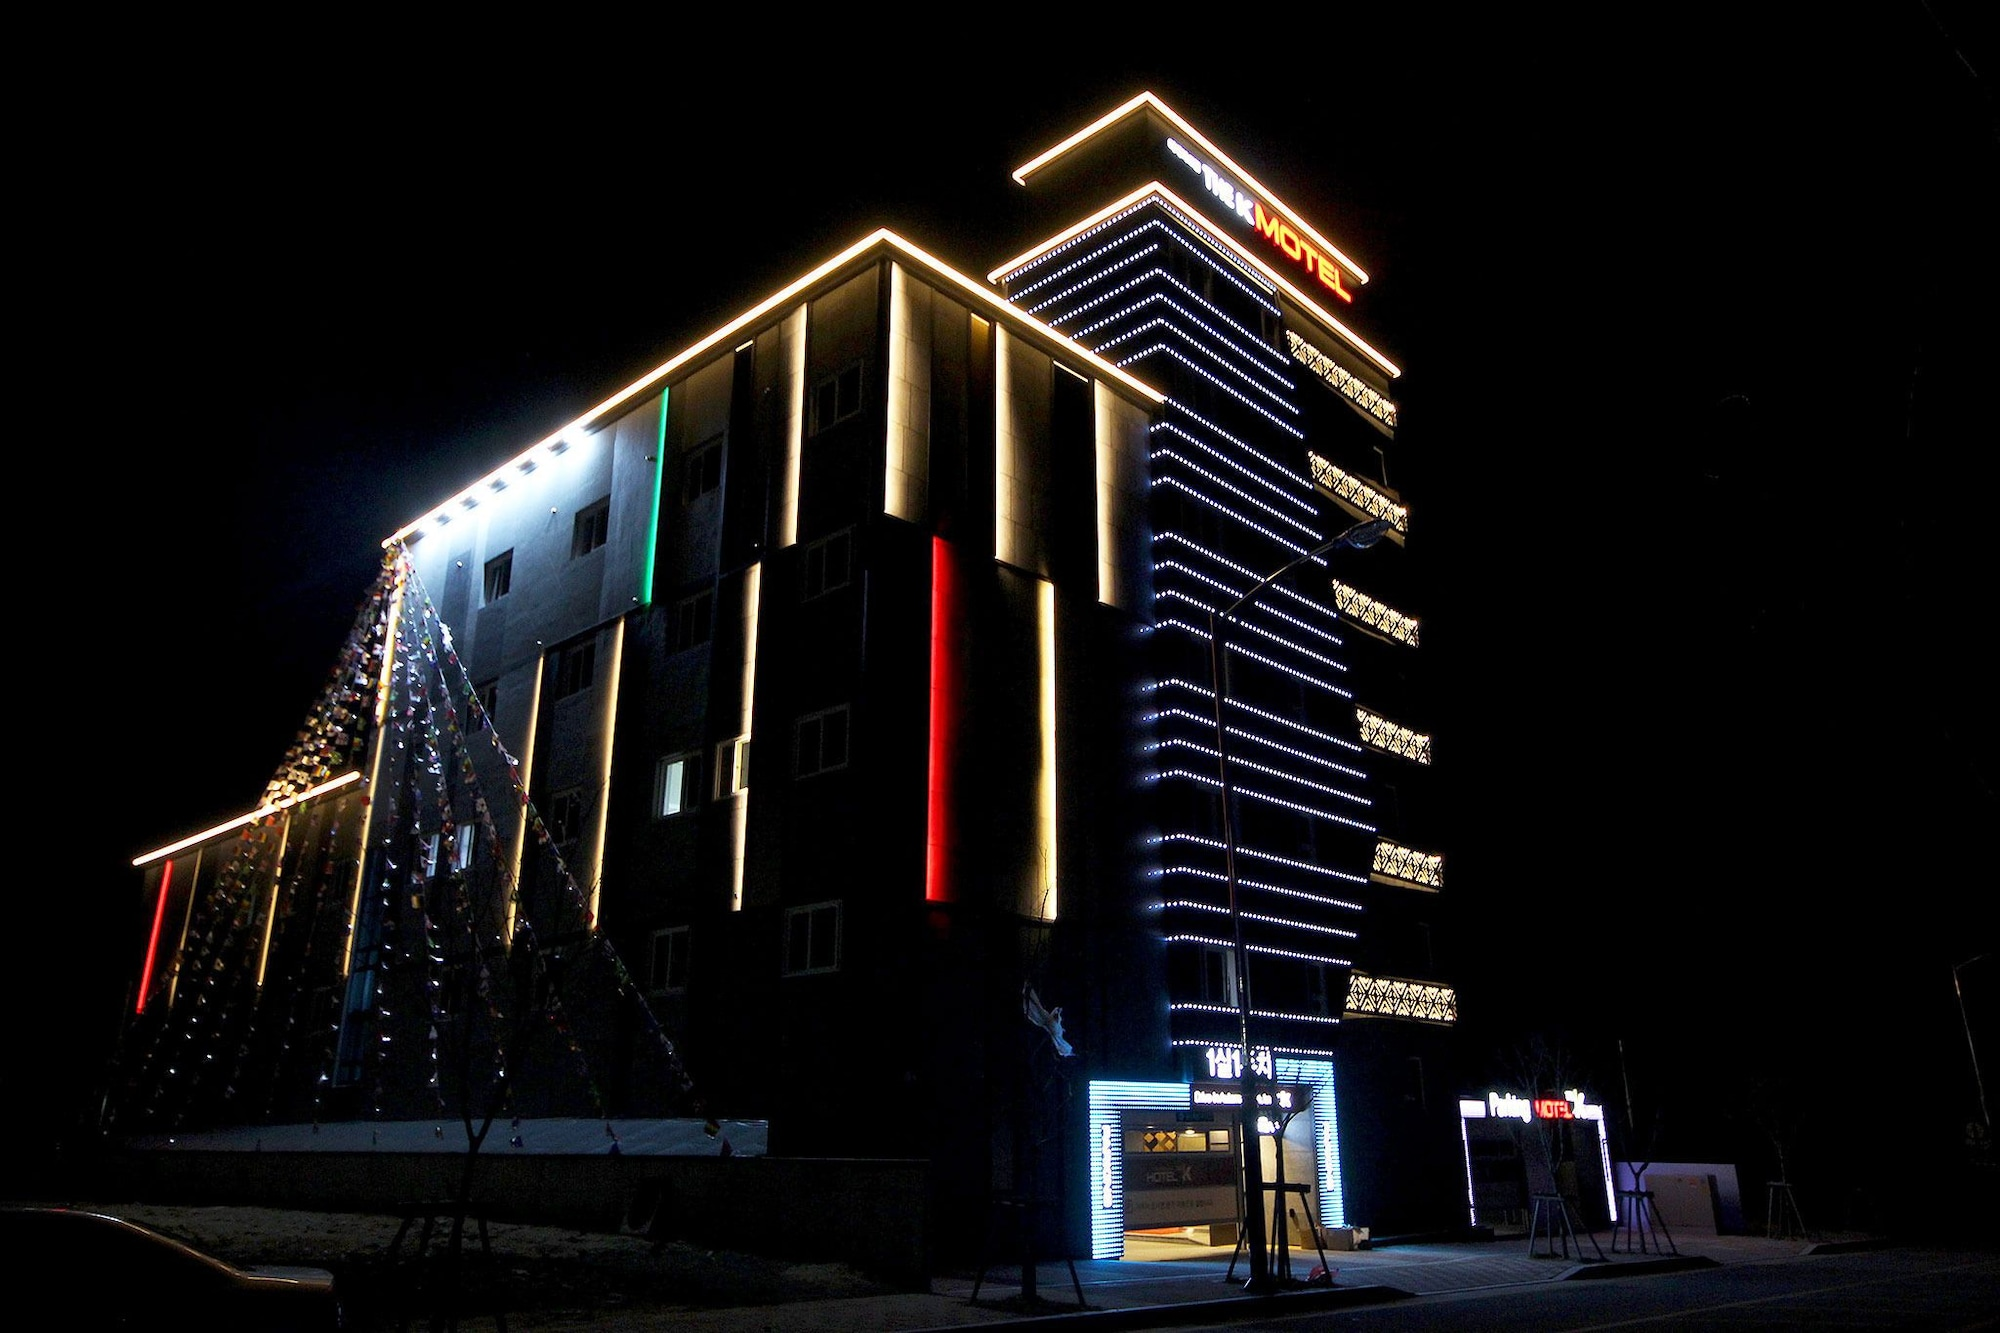 The K Motel Ulsan, Ulju